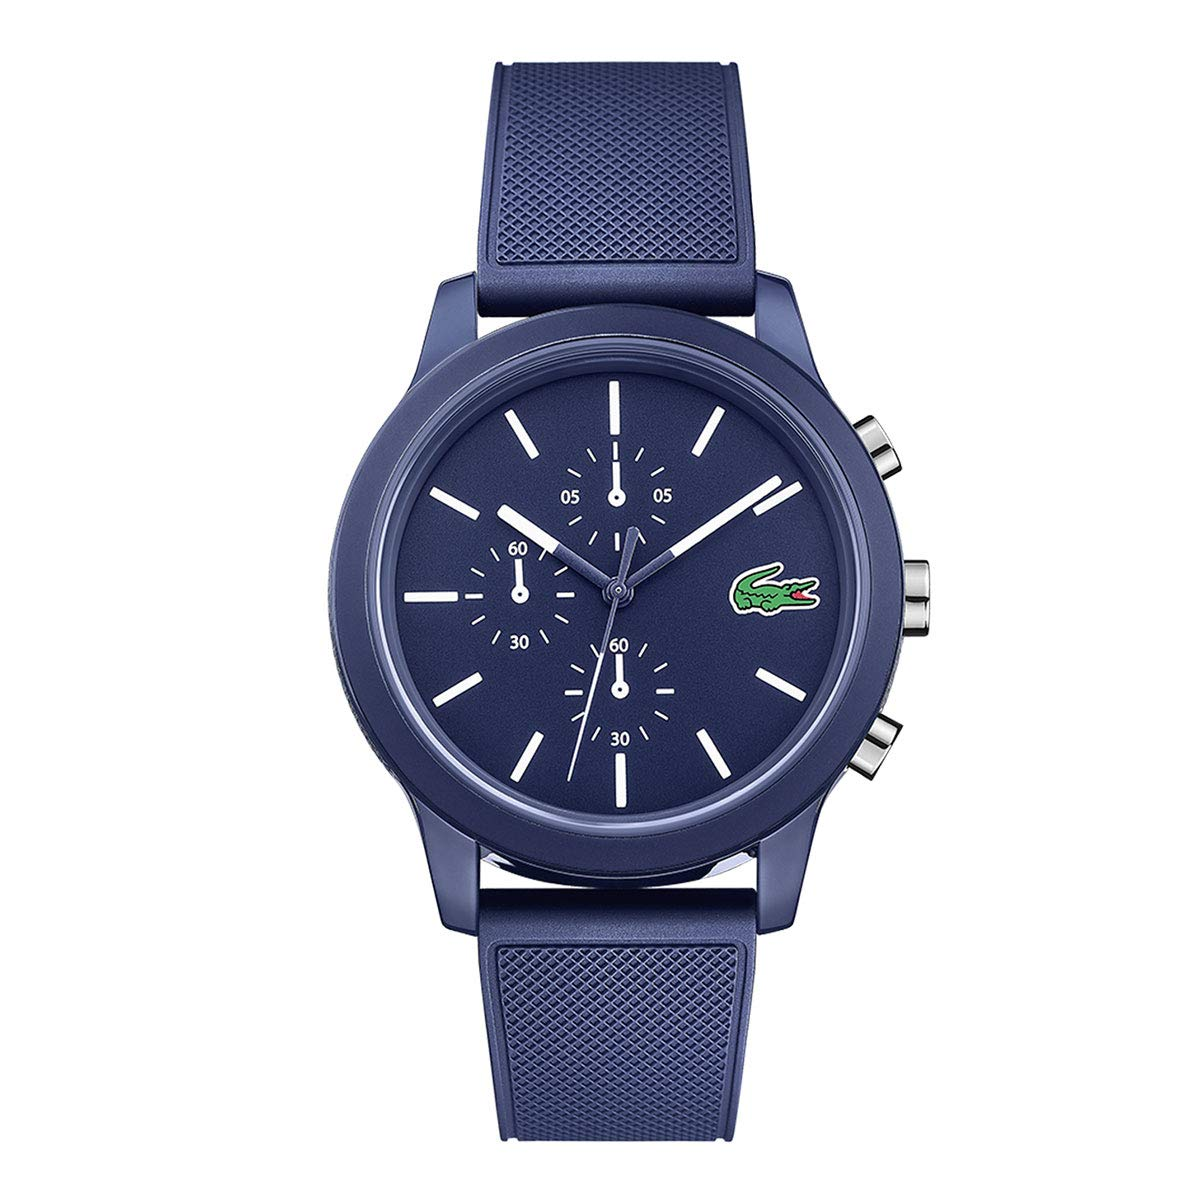 Lacoste Men's 40mm Blue Silicone Band Steel Case Quartz Analog Watch 2010970